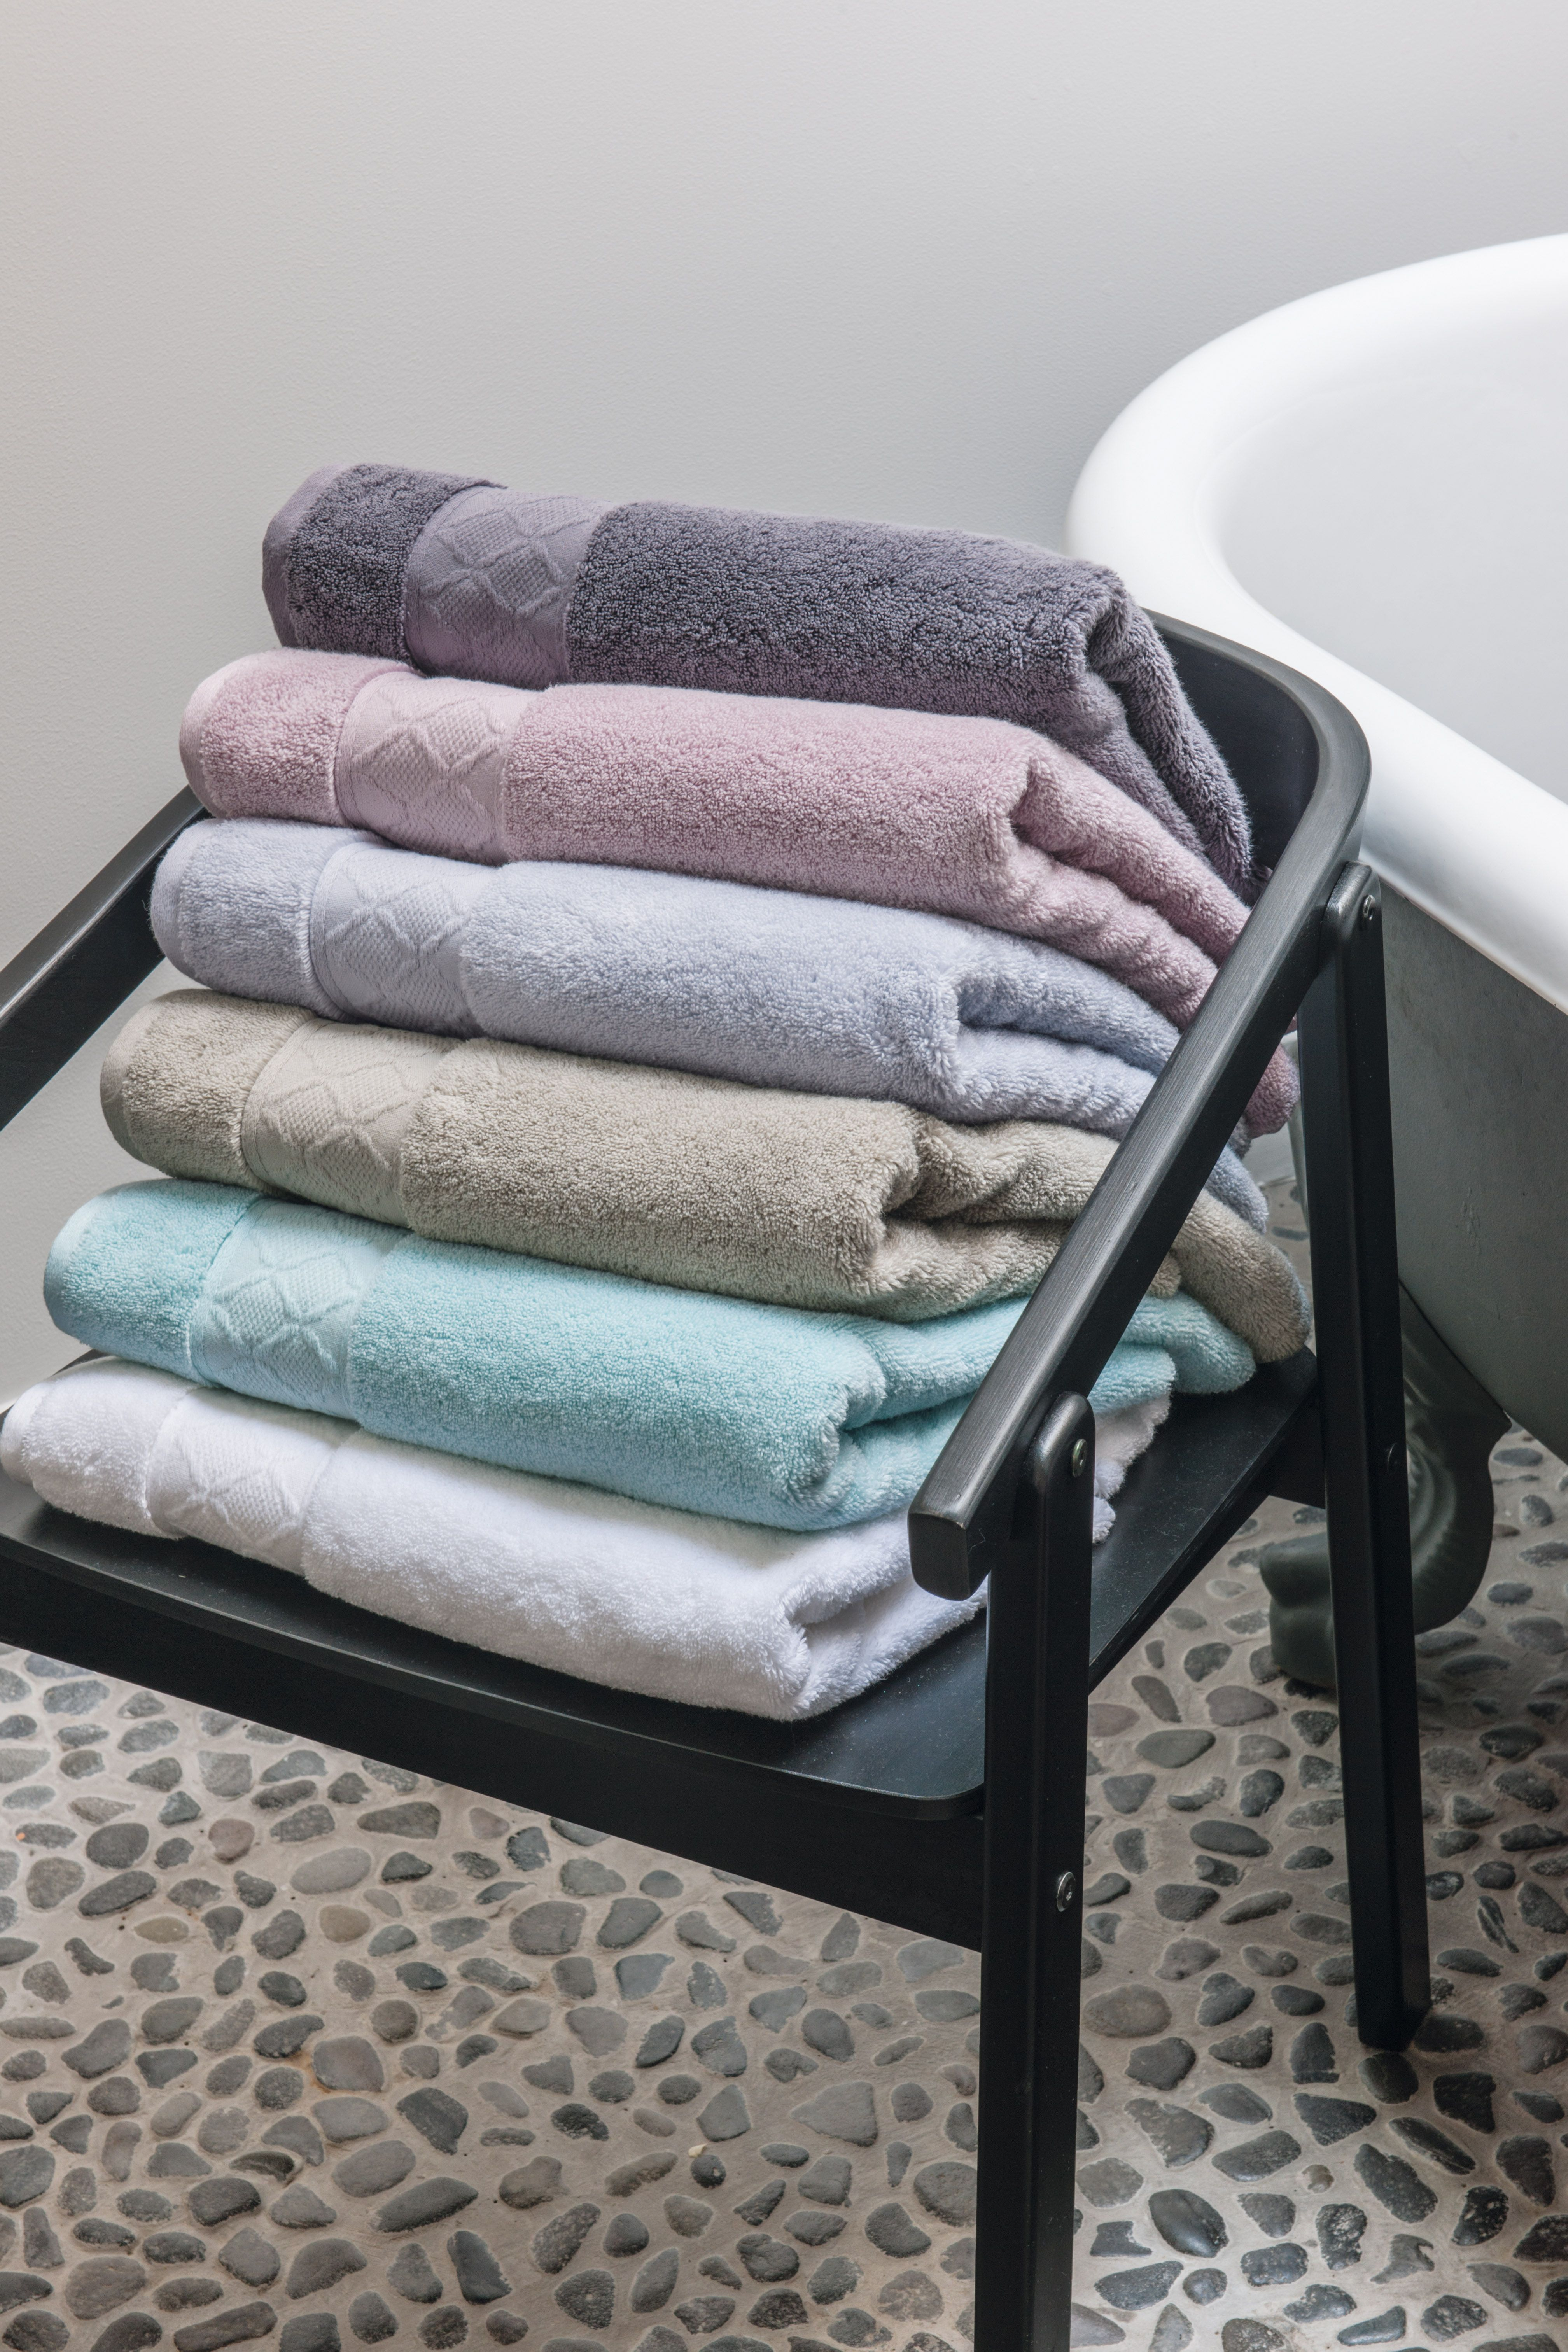 Infinitely Soft And Cozy Caresse Borrows Its Pastel Powdery And